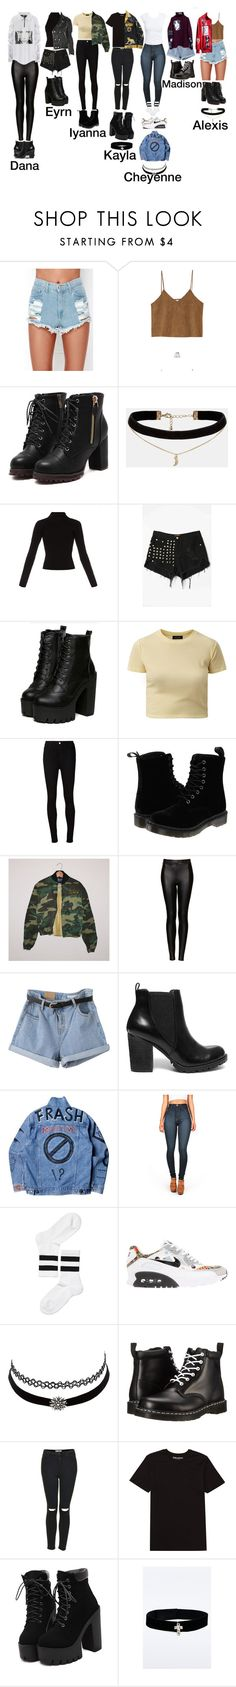 """Independent performing at the Mohegan Sun Arena"" by independent-official ❤ liked on Polyvore featuring Goroke, ASOS, Haider Ackermann, WithChic, Burberry, AG Adriano Goldschmied, Dr. Martens, Topshop, VFiles and Steve Madden"